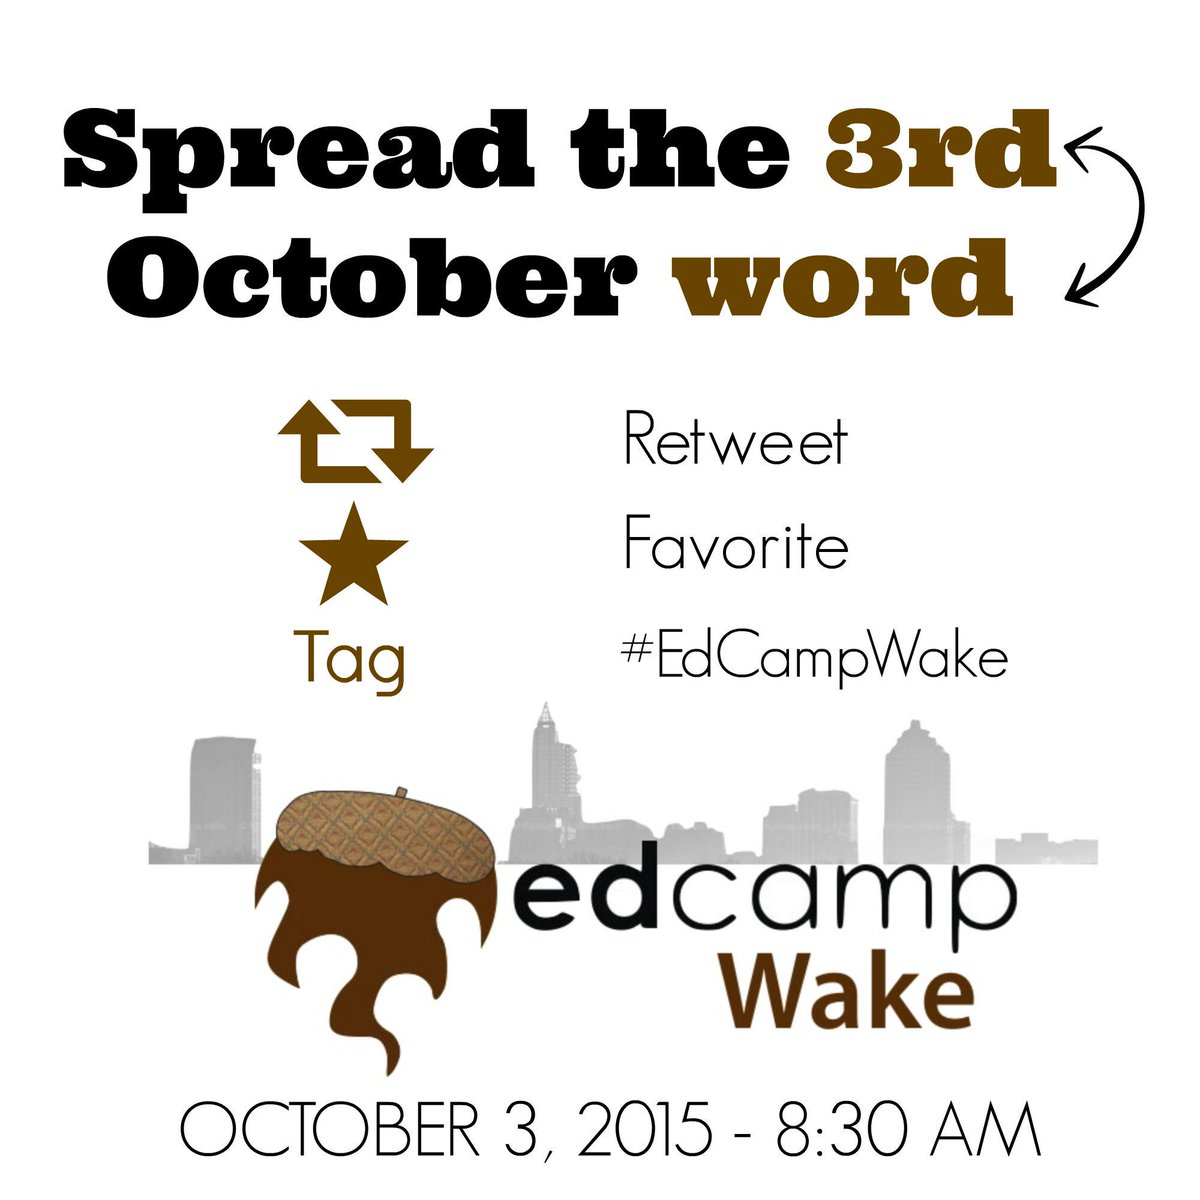 Help spread the 3rd :) http://t.co/FCIsBomZbQ #EdCampWake http://t.co/Wf4KmIbEqo